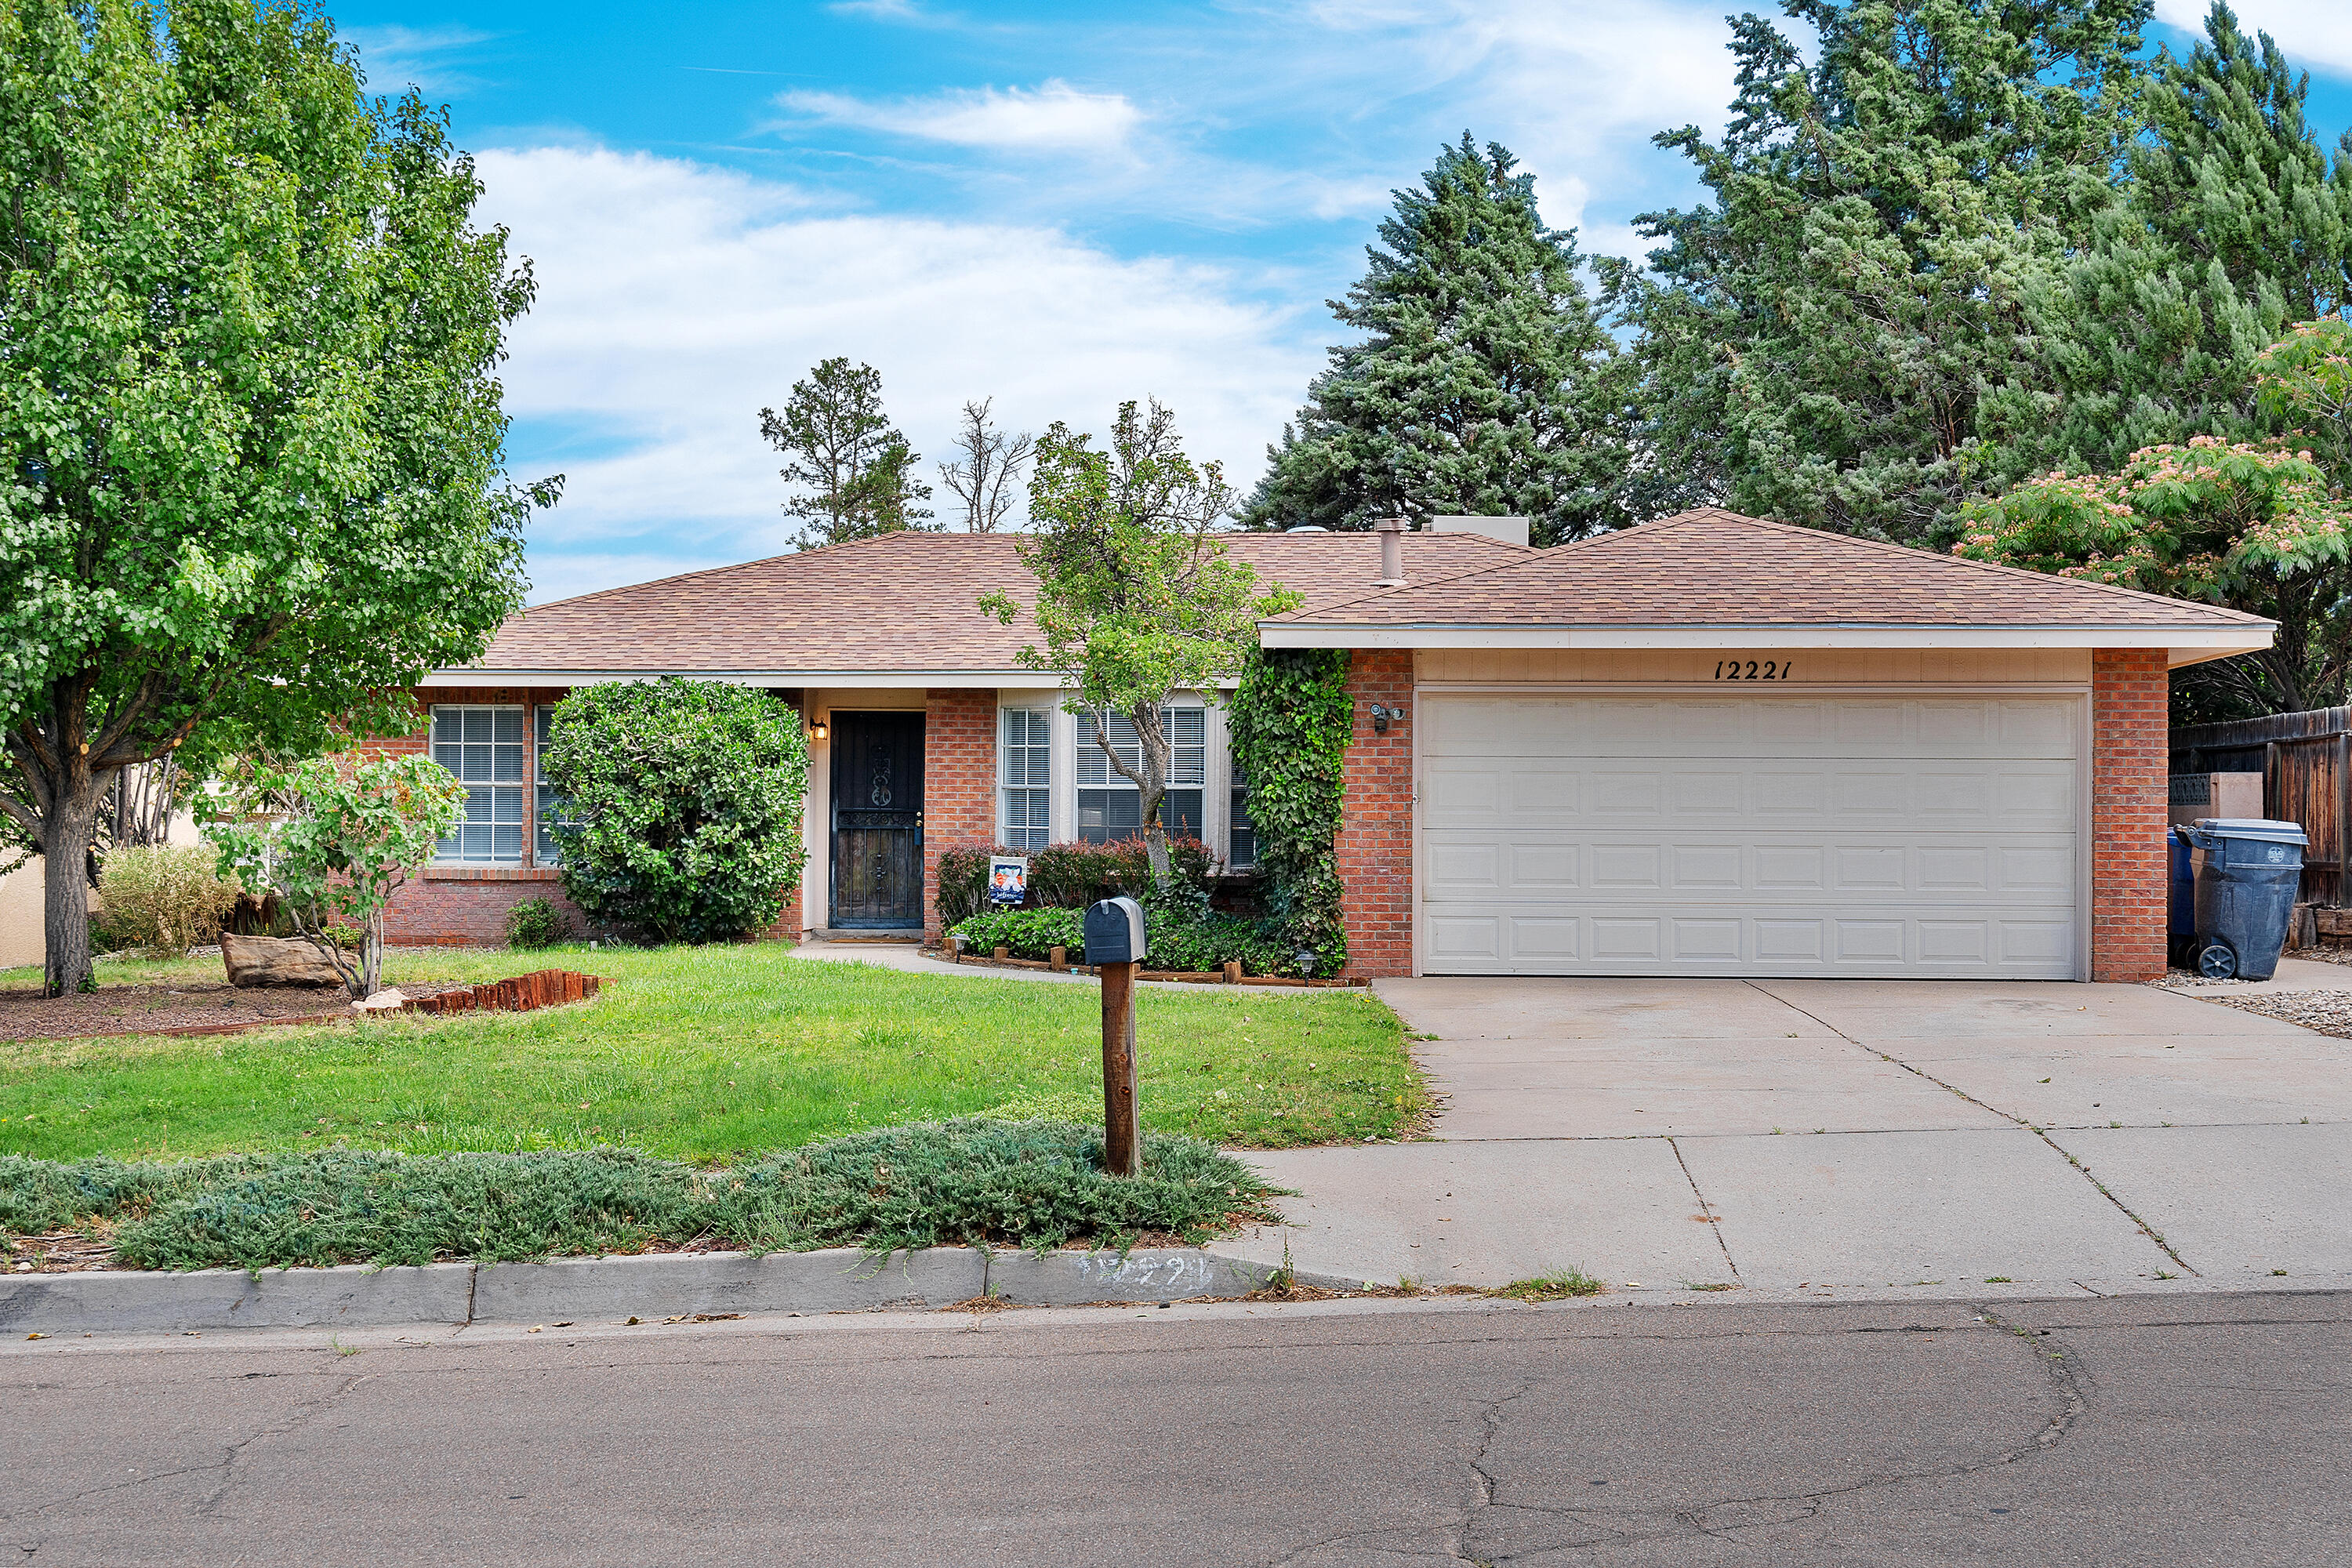 Talk a look at this lovely 3 bed 2 bath Brentwood Hills home! Located in a popular neighborhood just seconds away from a beautiful park and everything else you could need. Recent updates include roof, water heater, flooring and evaporative cooling unit. Add a 2 car garage and a huge, peaceful front and back yard, this home is ready for its new owner. Come take a look before it's gone!